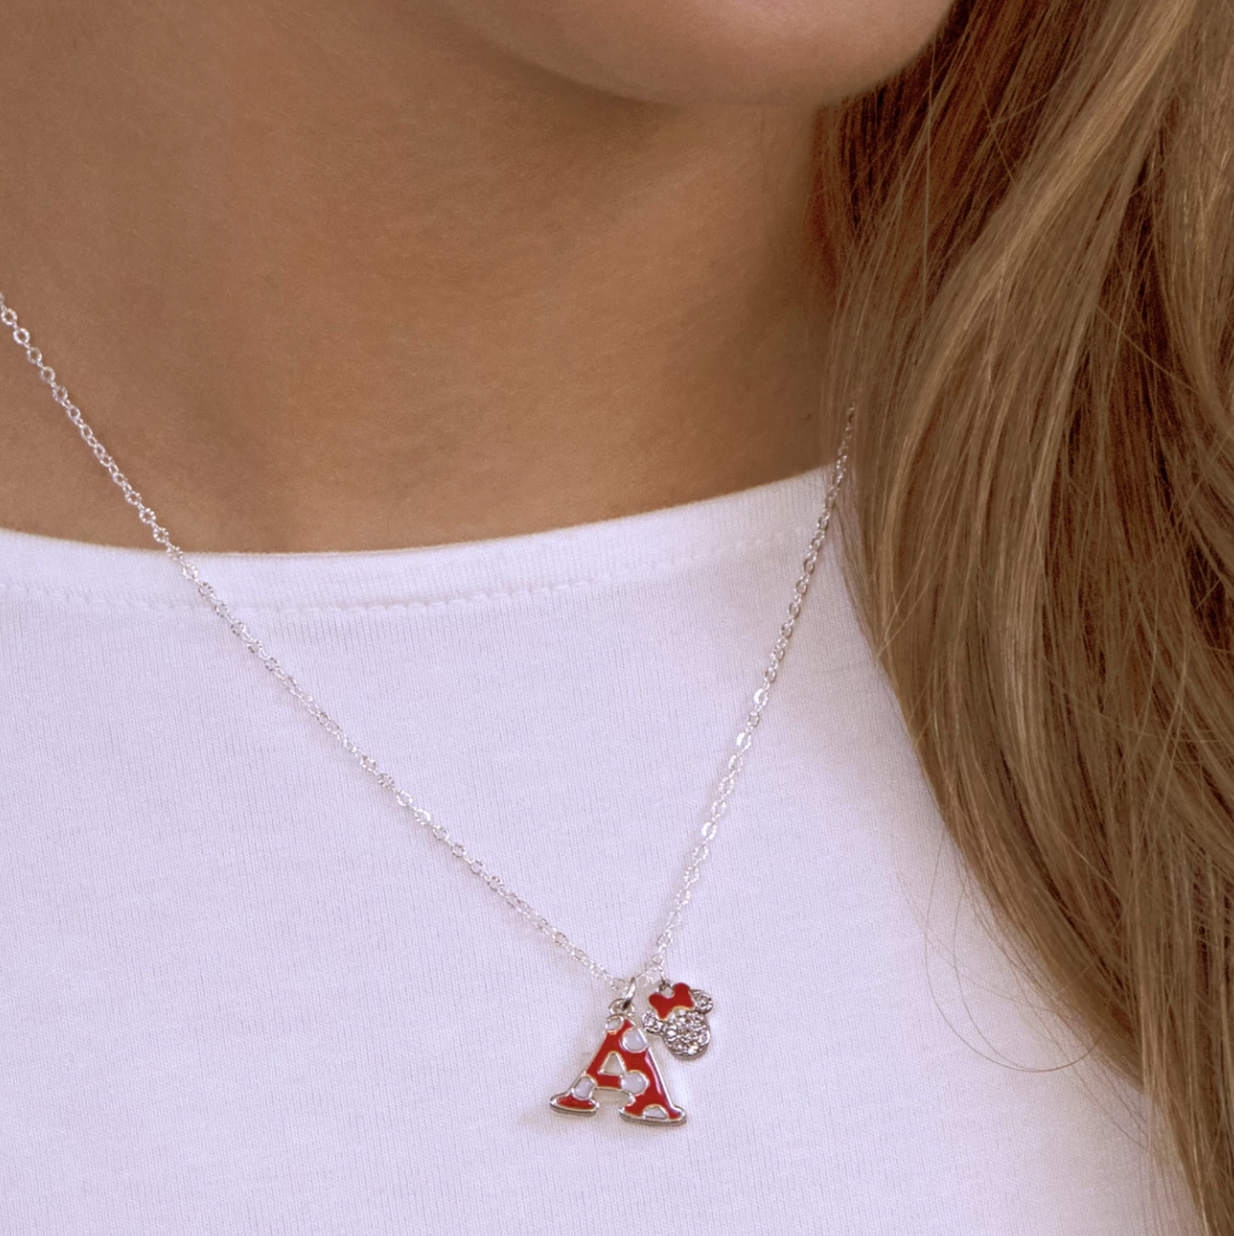 The necklace with an A initial in a polka dot pattern with a small Minnie Mouse pendant